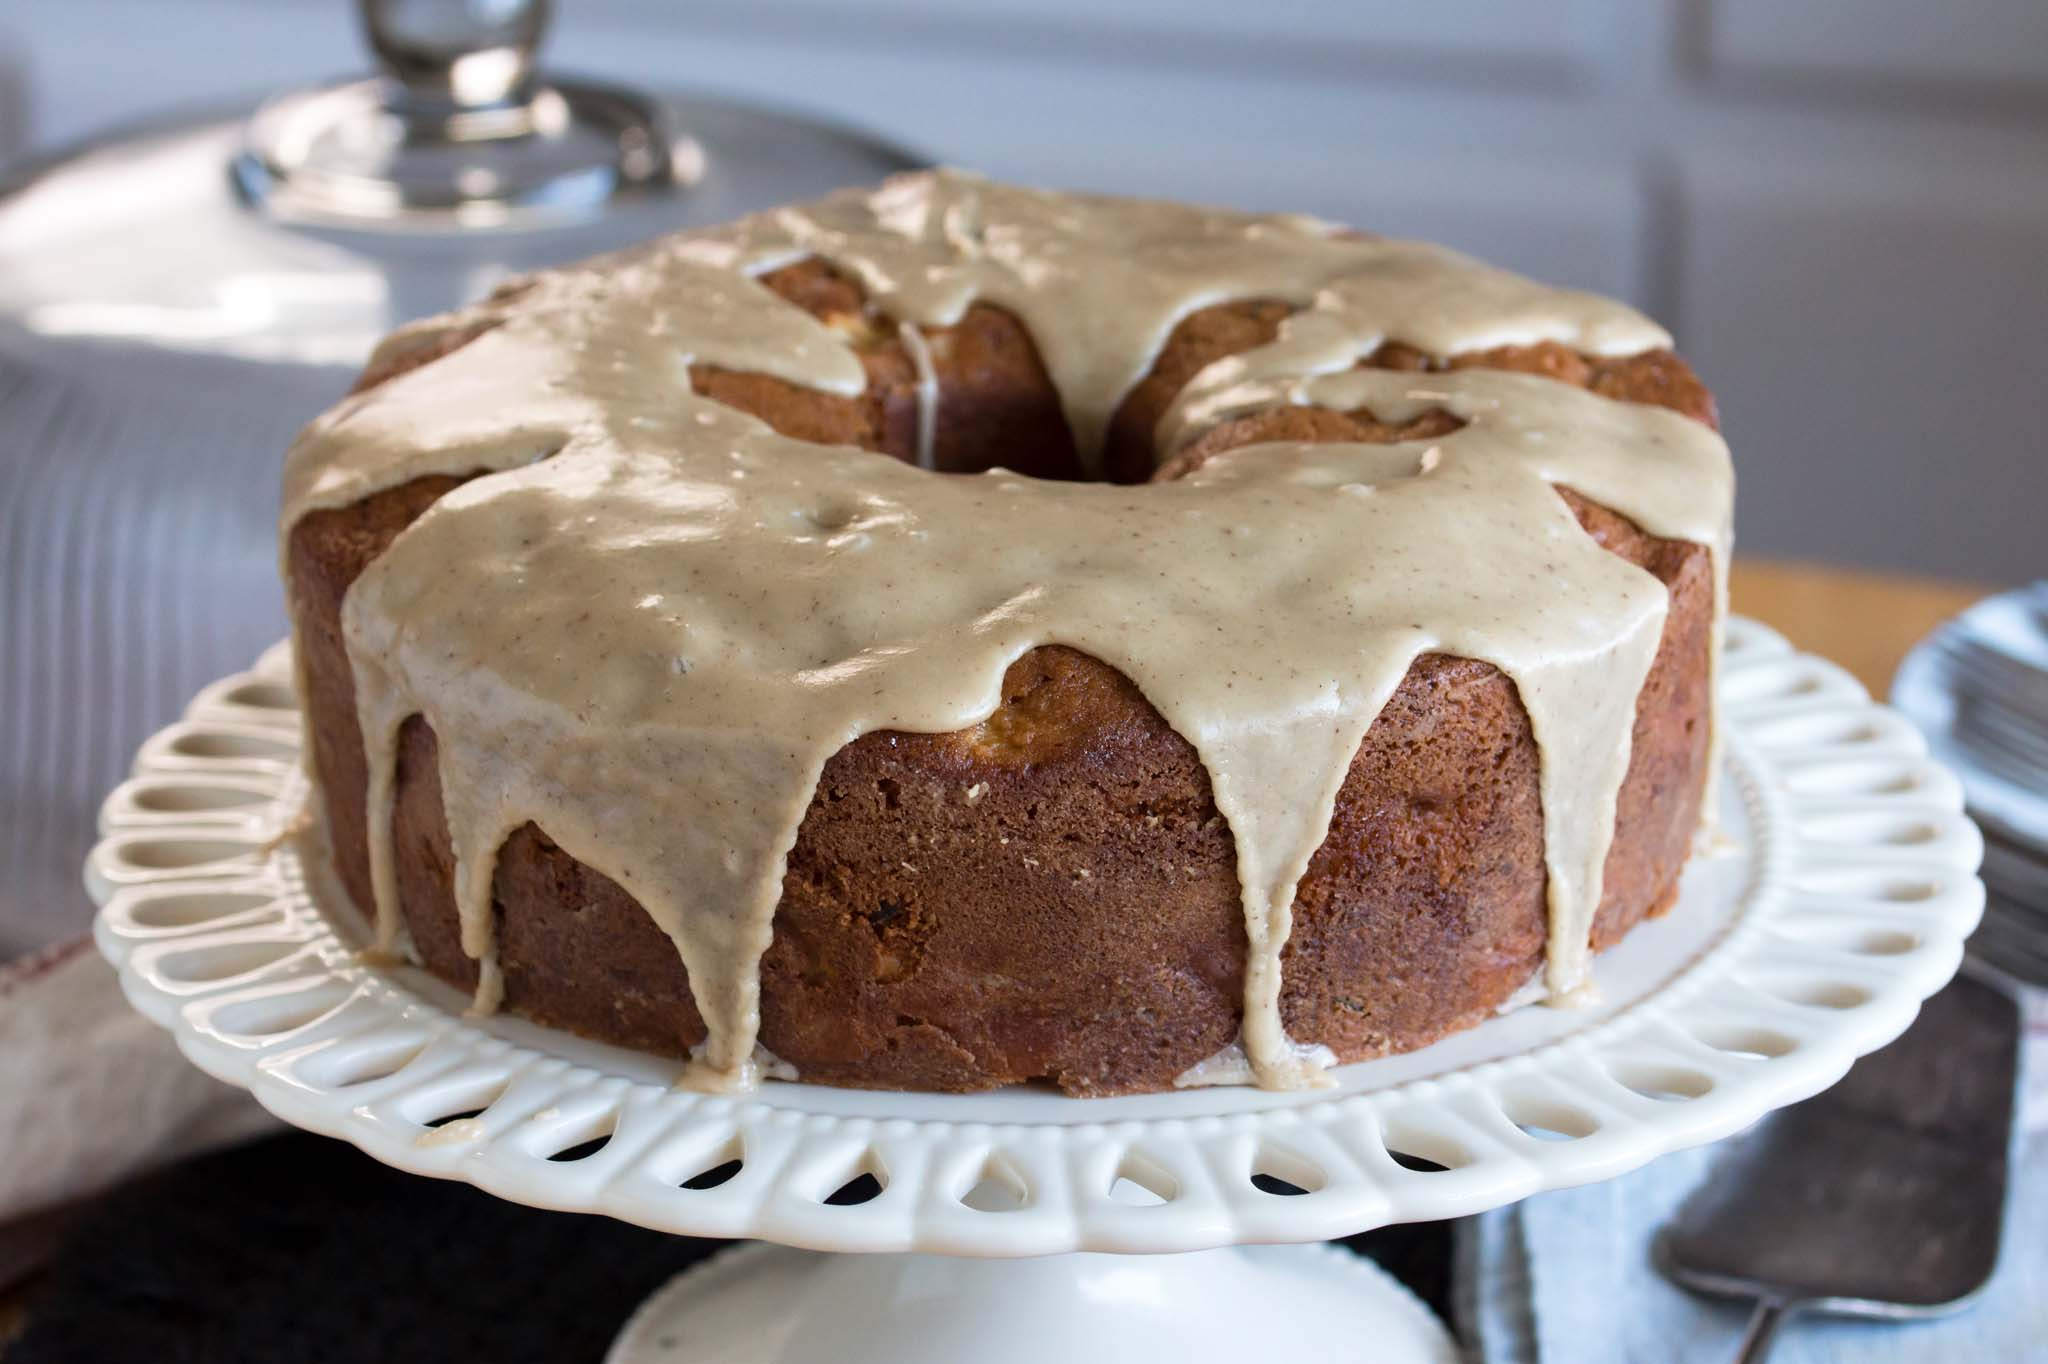 Maple Glaze Recipe For Cake